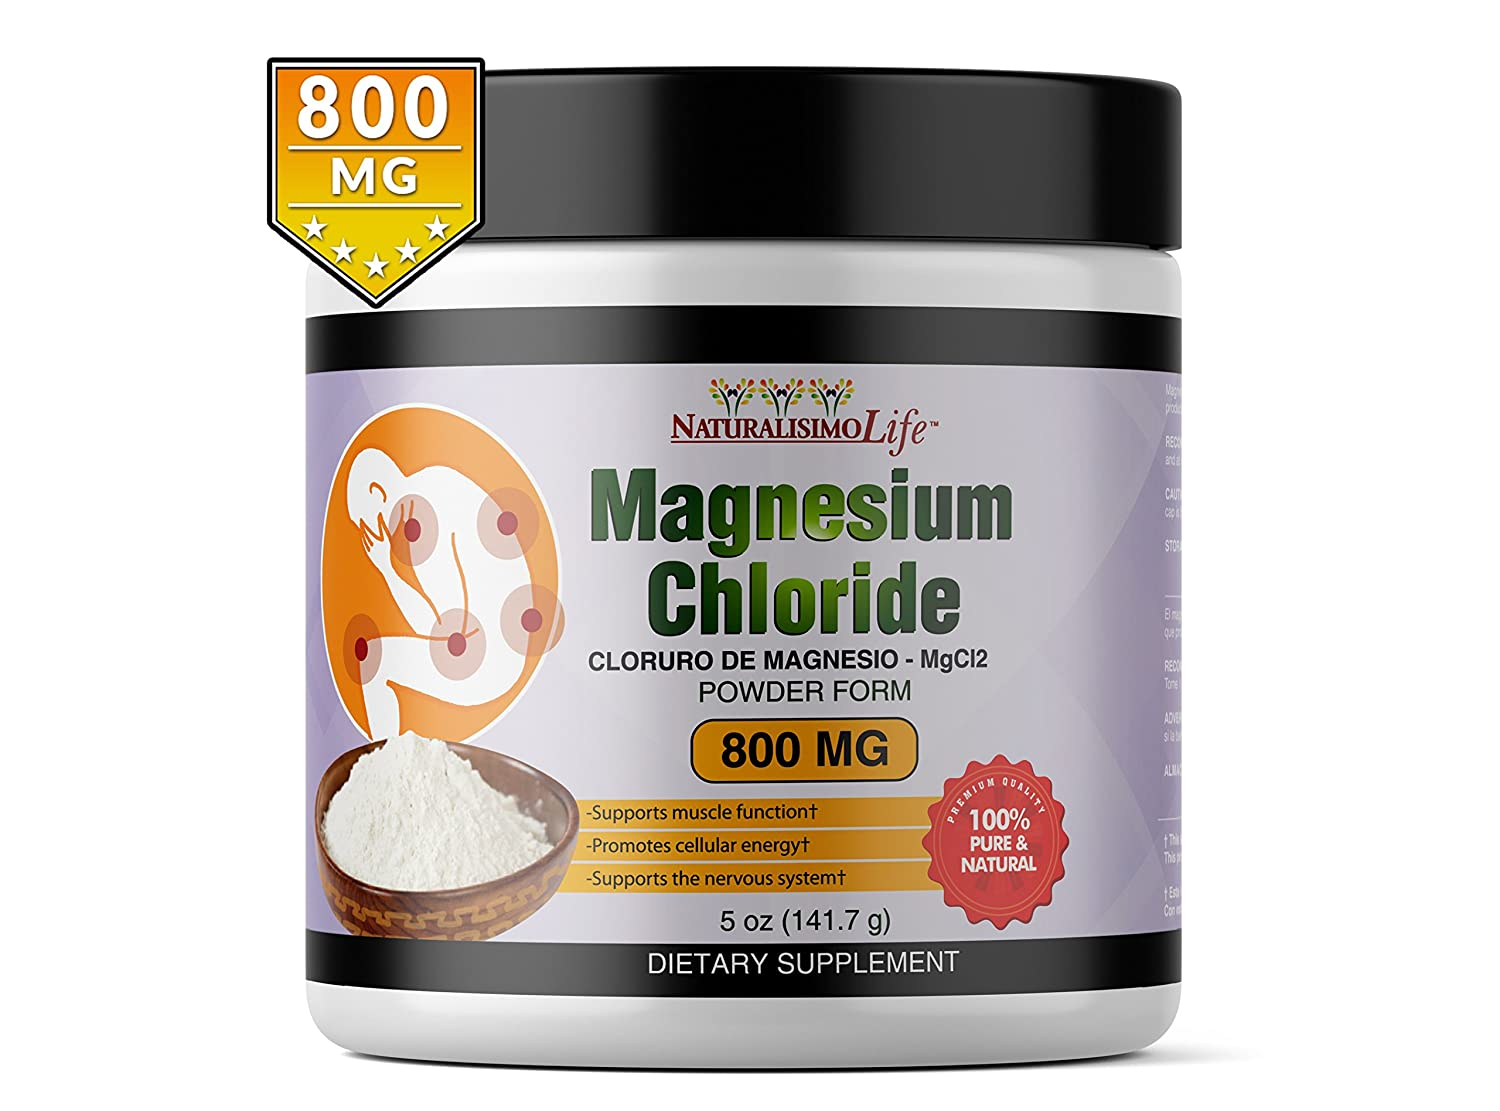 Amazon.com: Cloruro de Magnesio Magnesium Chloride 5oz (141.7g) 800mg measuring scoop inside 177 servings: Health & Personal Care